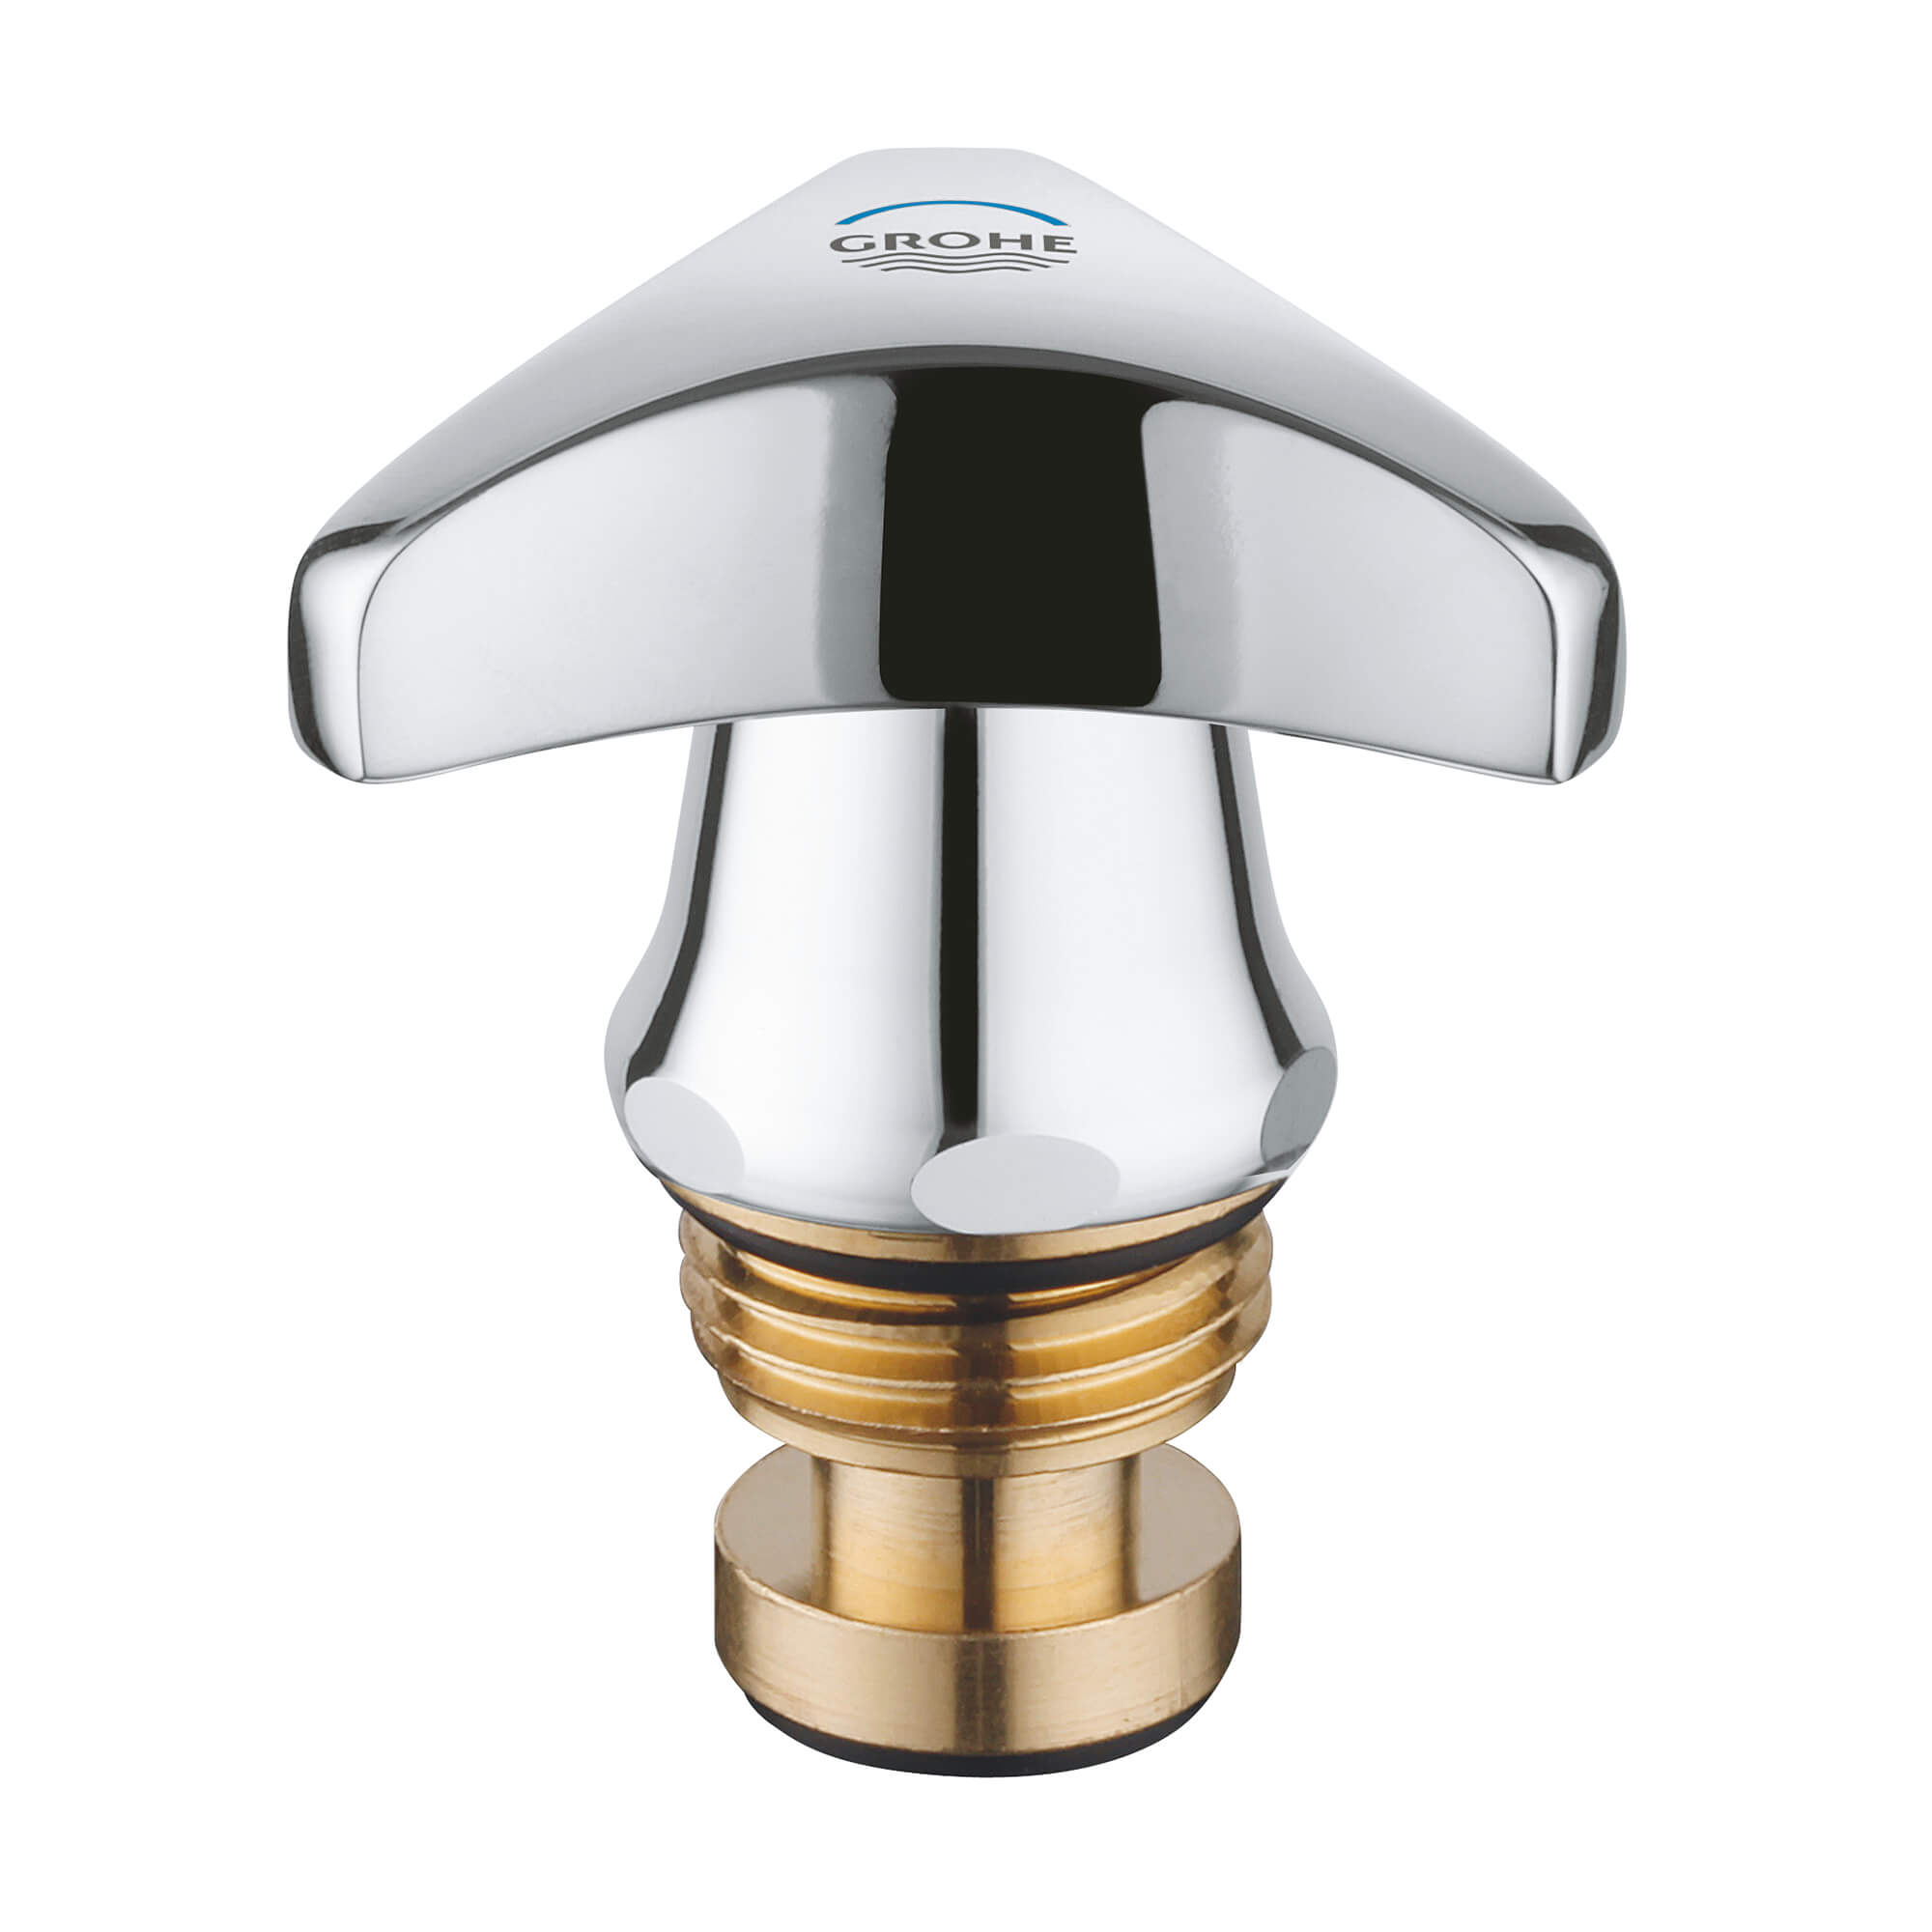 Headpart Blue GROHE CHROME